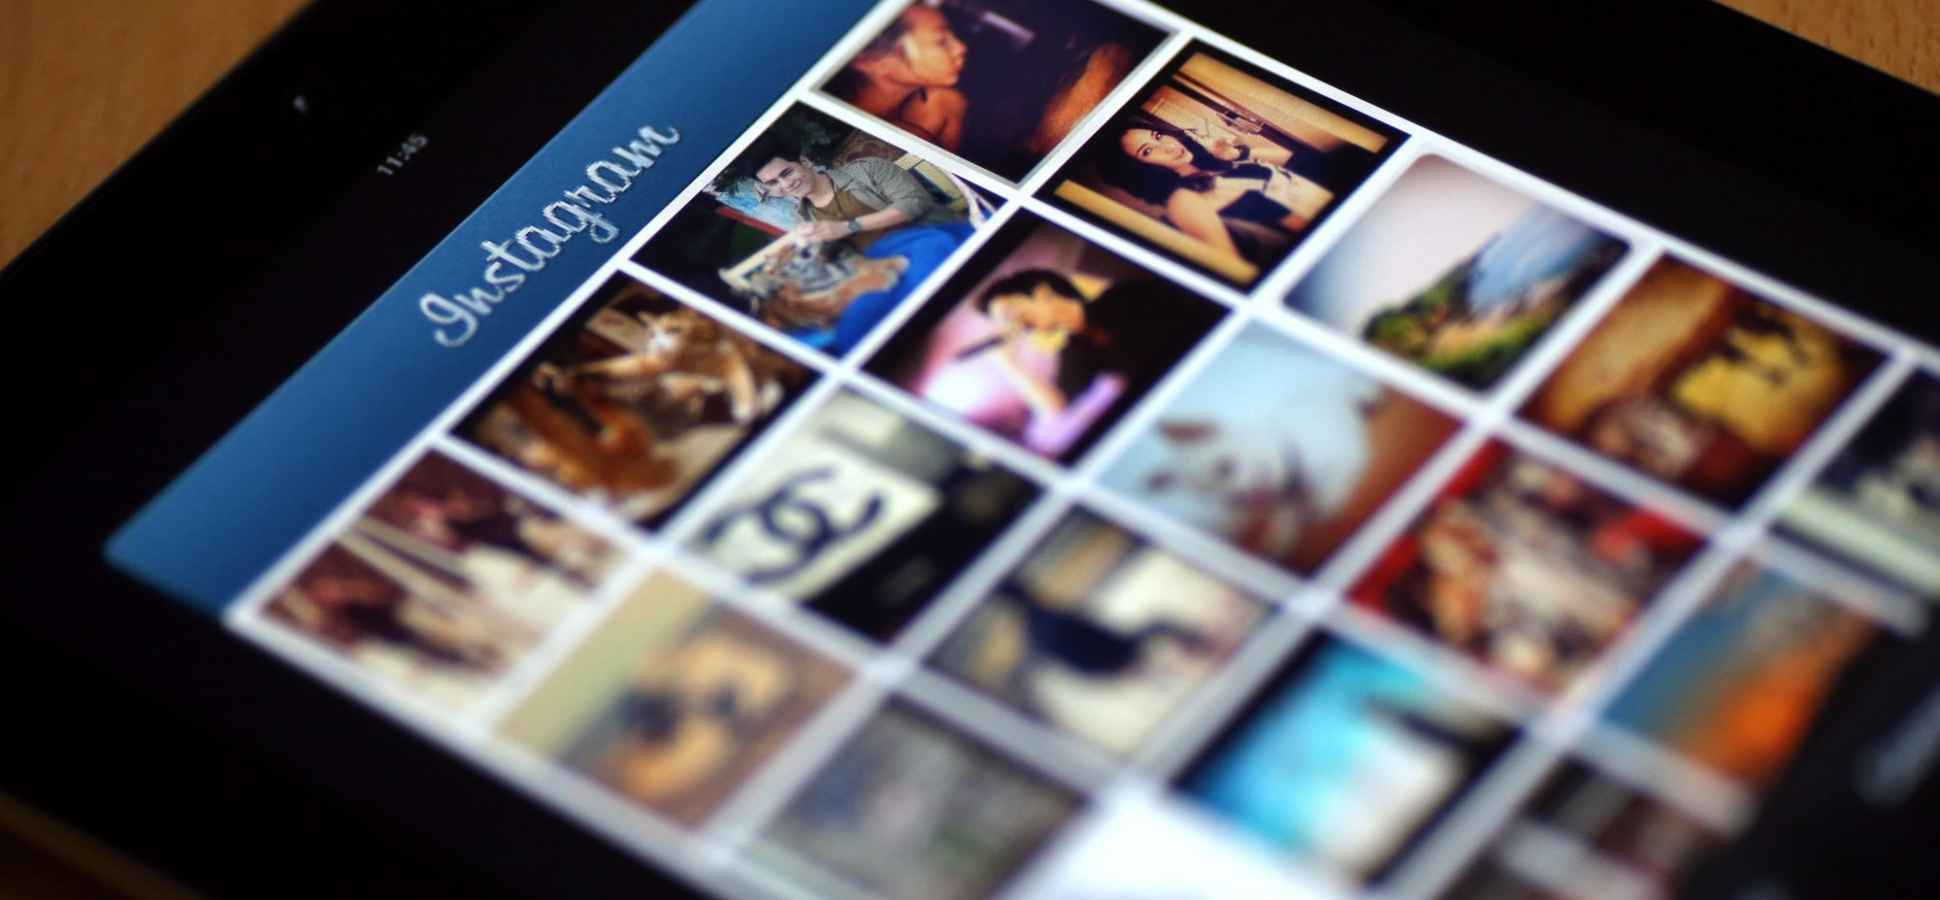 The Ultimate Guide to Instagram: How to Build a Profile Everyone Will Want to Follow